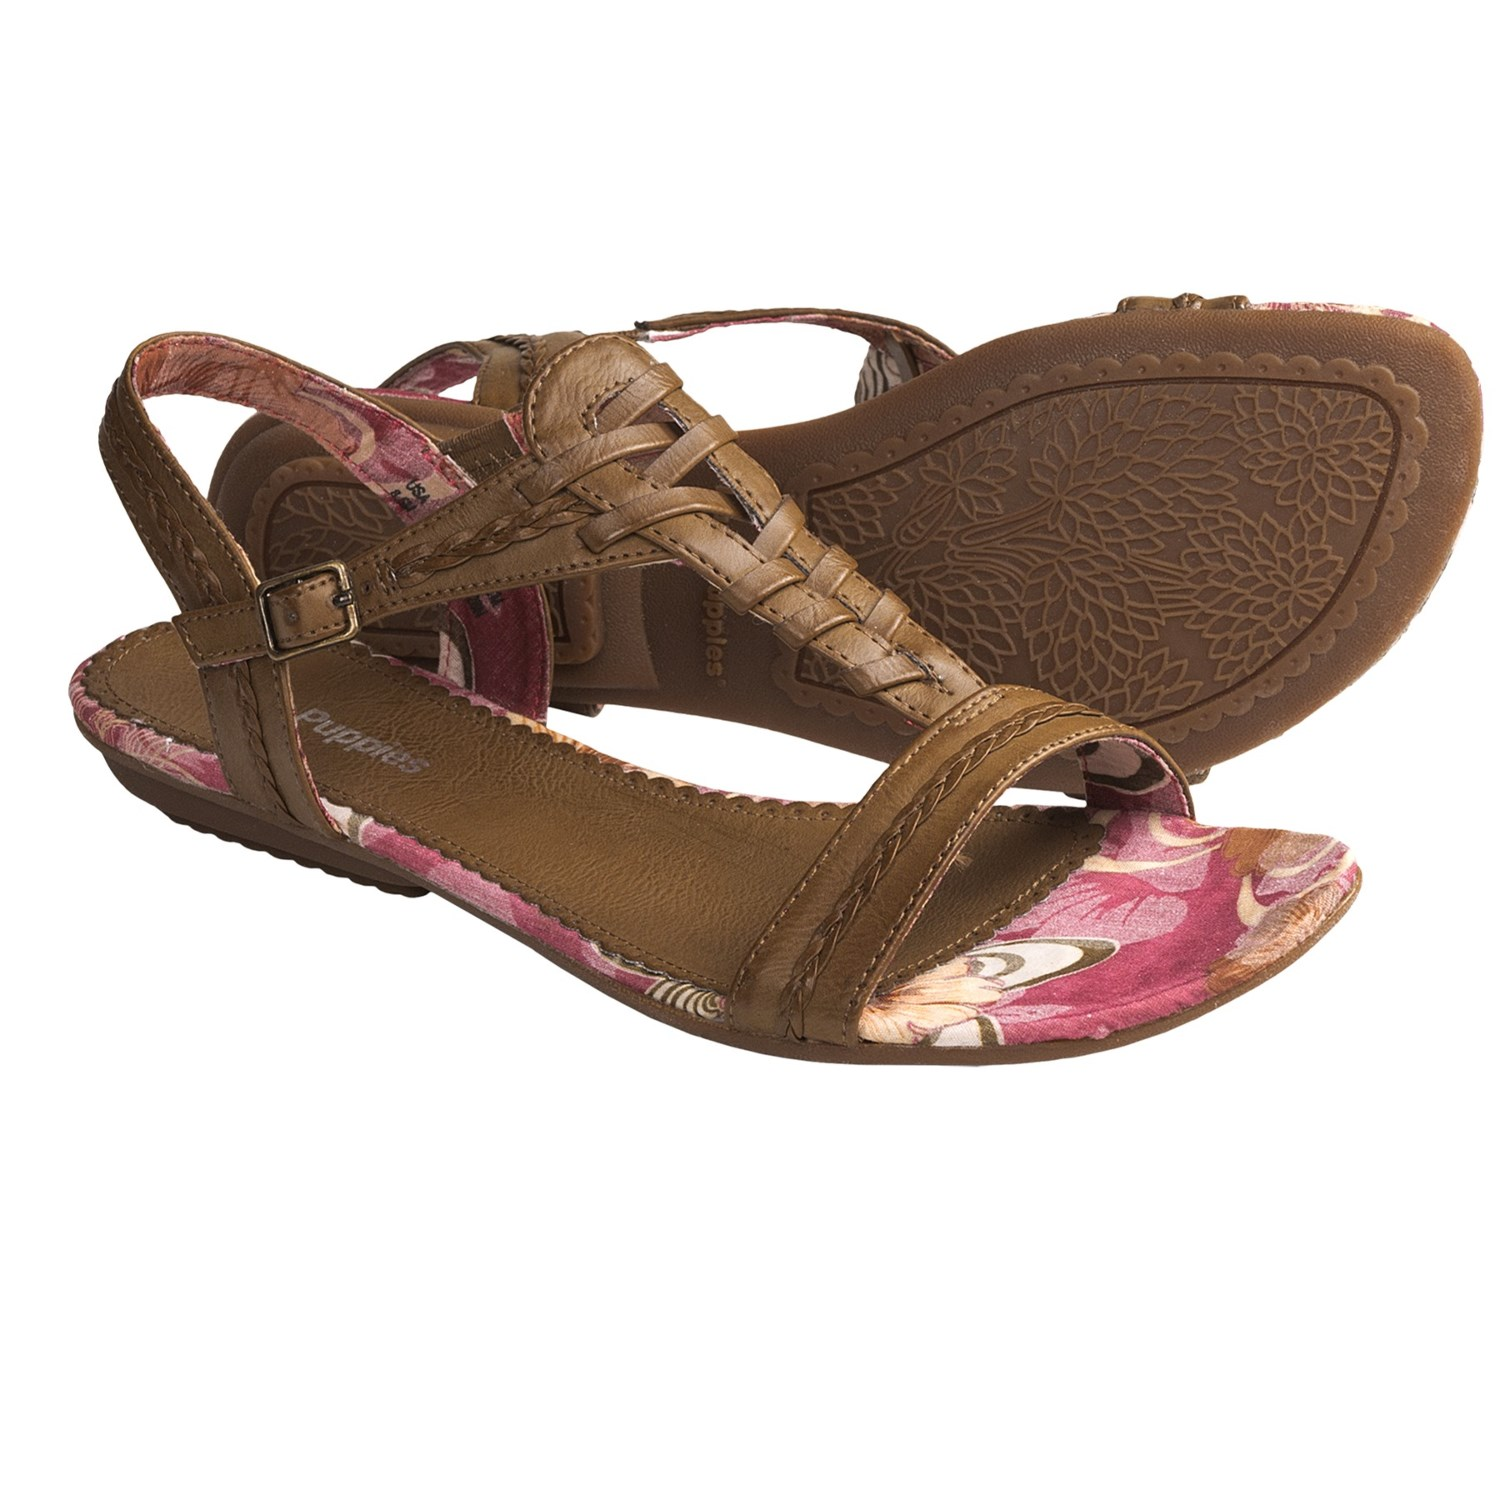 New Hush Puppies Womens Zendal Slide XBand Sandals In Taupe Leather